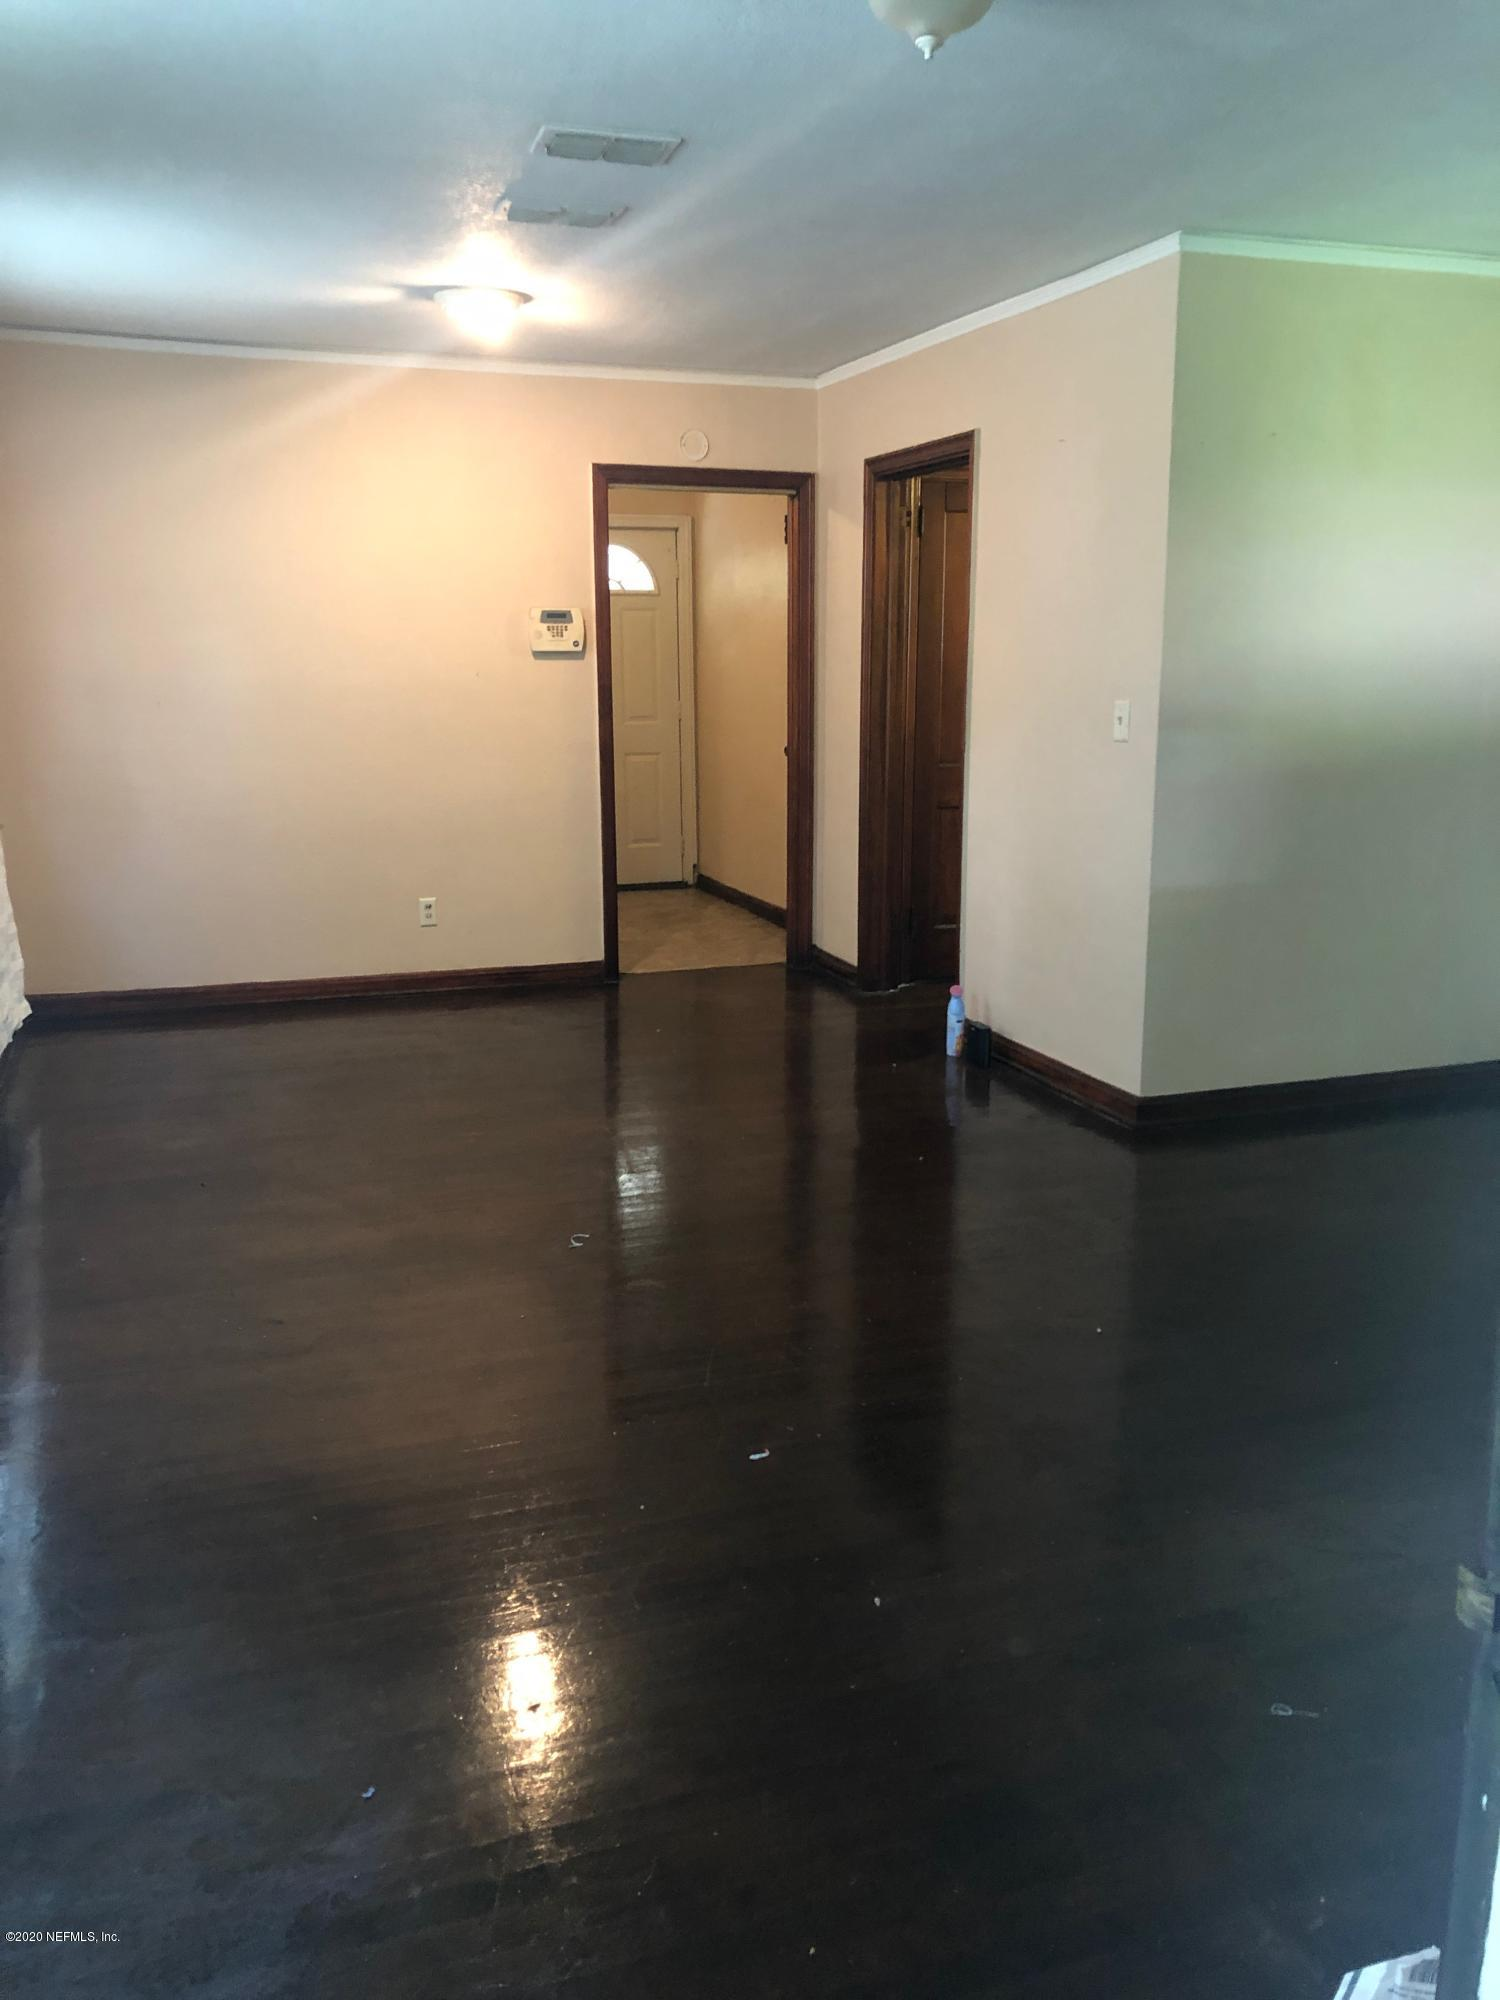 3546 HIBISCUS, JACKSONVILLE, FLORIDA 32254, 2 Bedrooms Bedrooms, ,1 BathroomBathrooms,Investment / MultiFamily,For sale,HIBISCUS,1085493